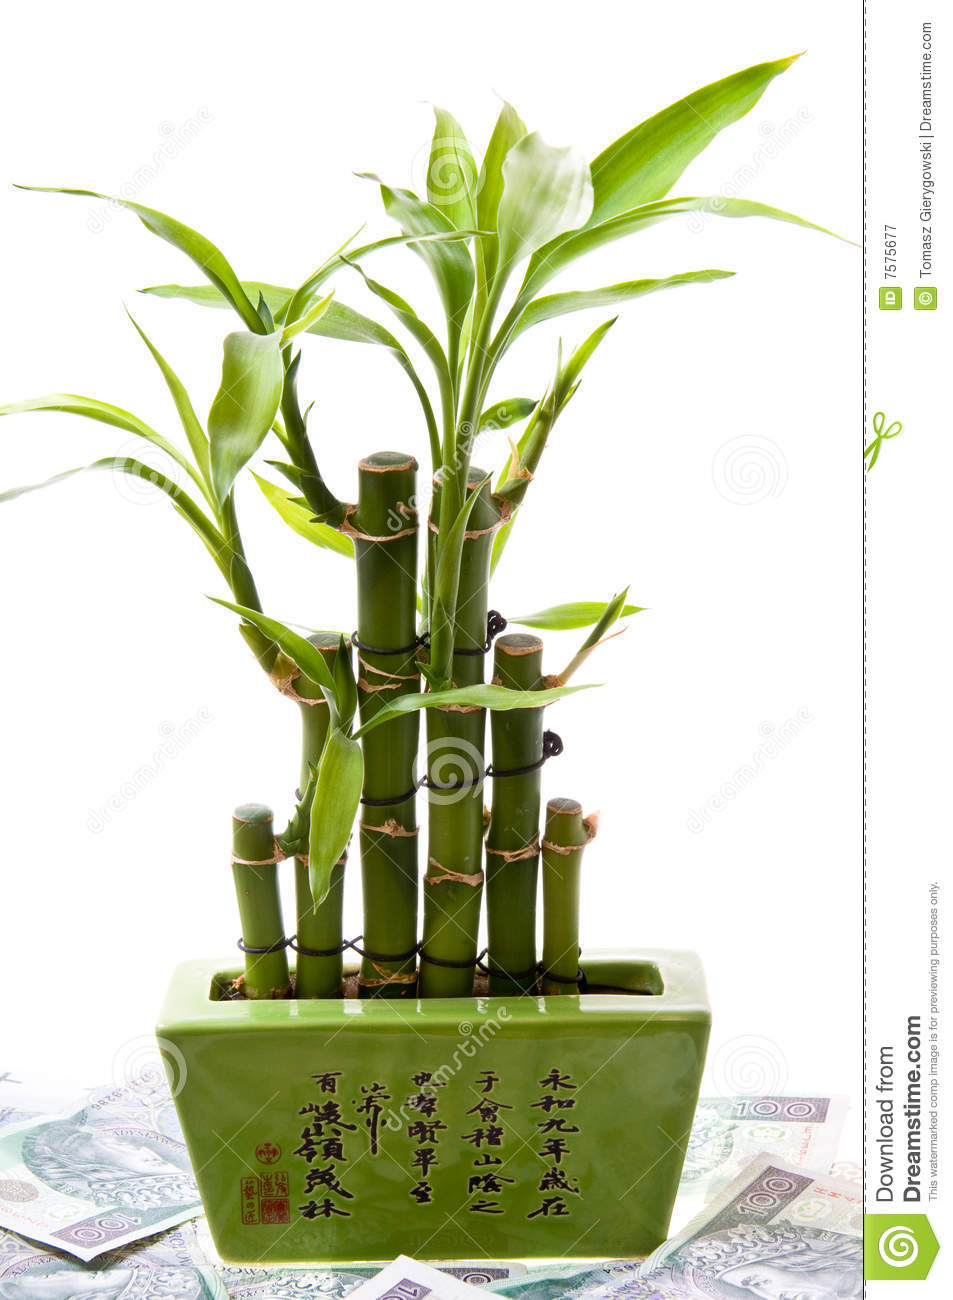 lucky bamboo on money 39 s background royalty free stock. Black Bedroom Furniture Sets. Home Design Ideas